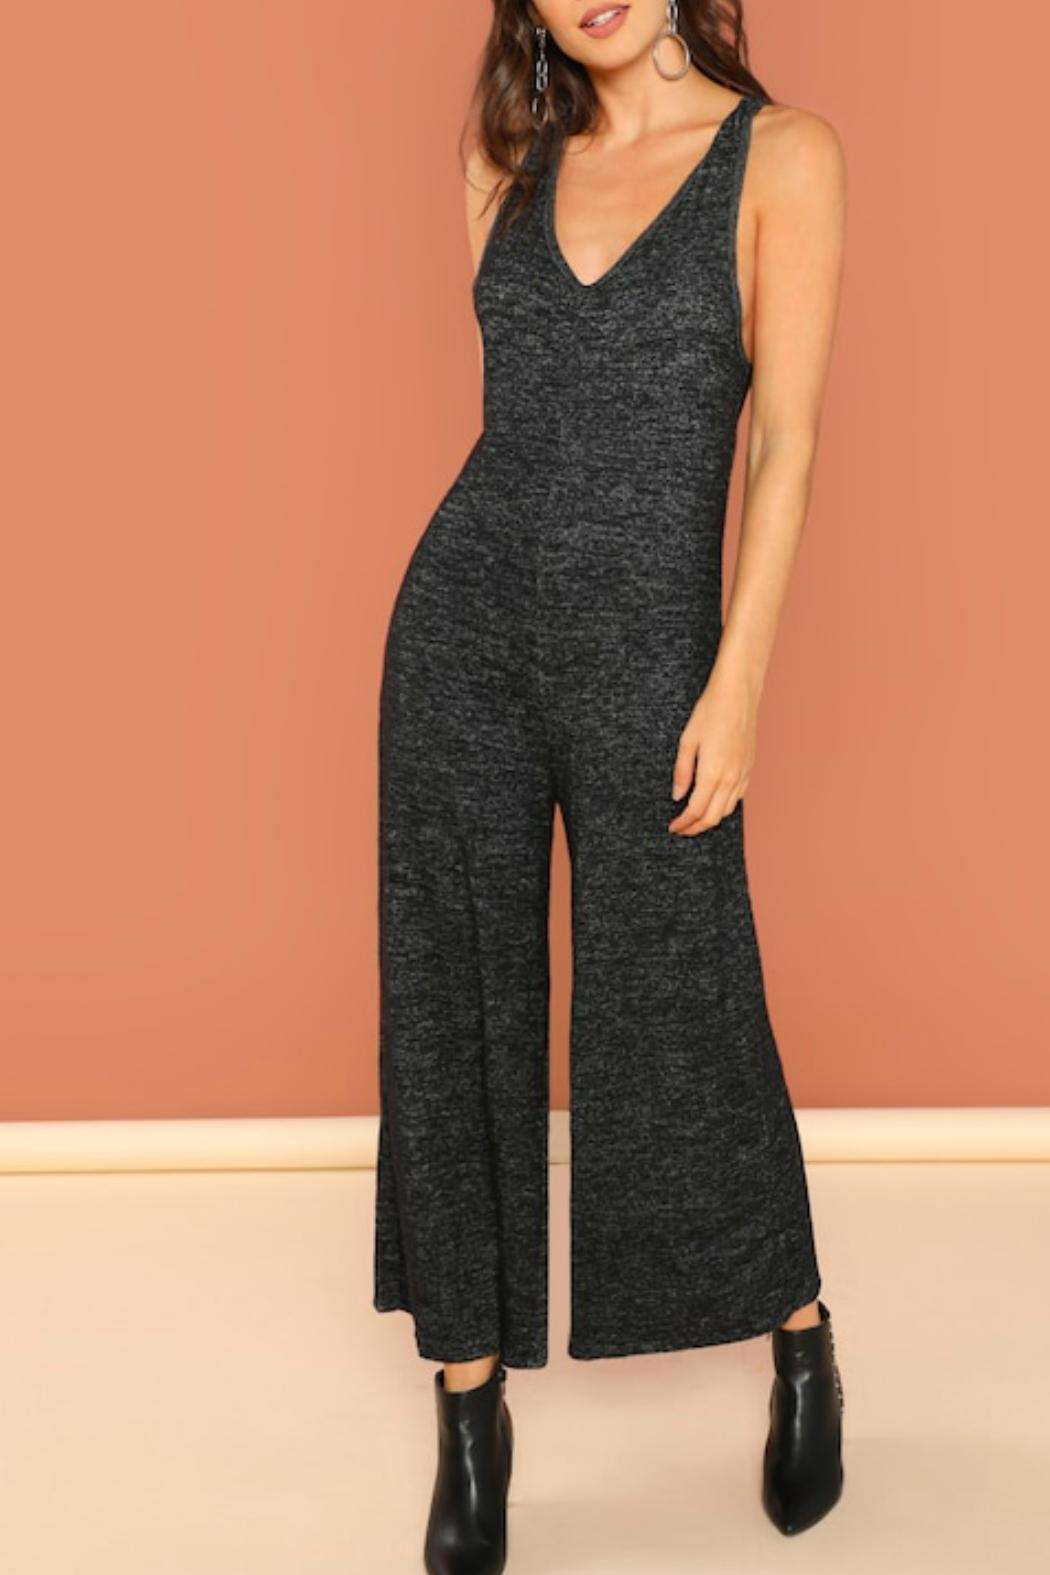 ac0b3844cddfc Double Zero Hacci Tank Jumpsuit from Alaska by Apricot Lane ...